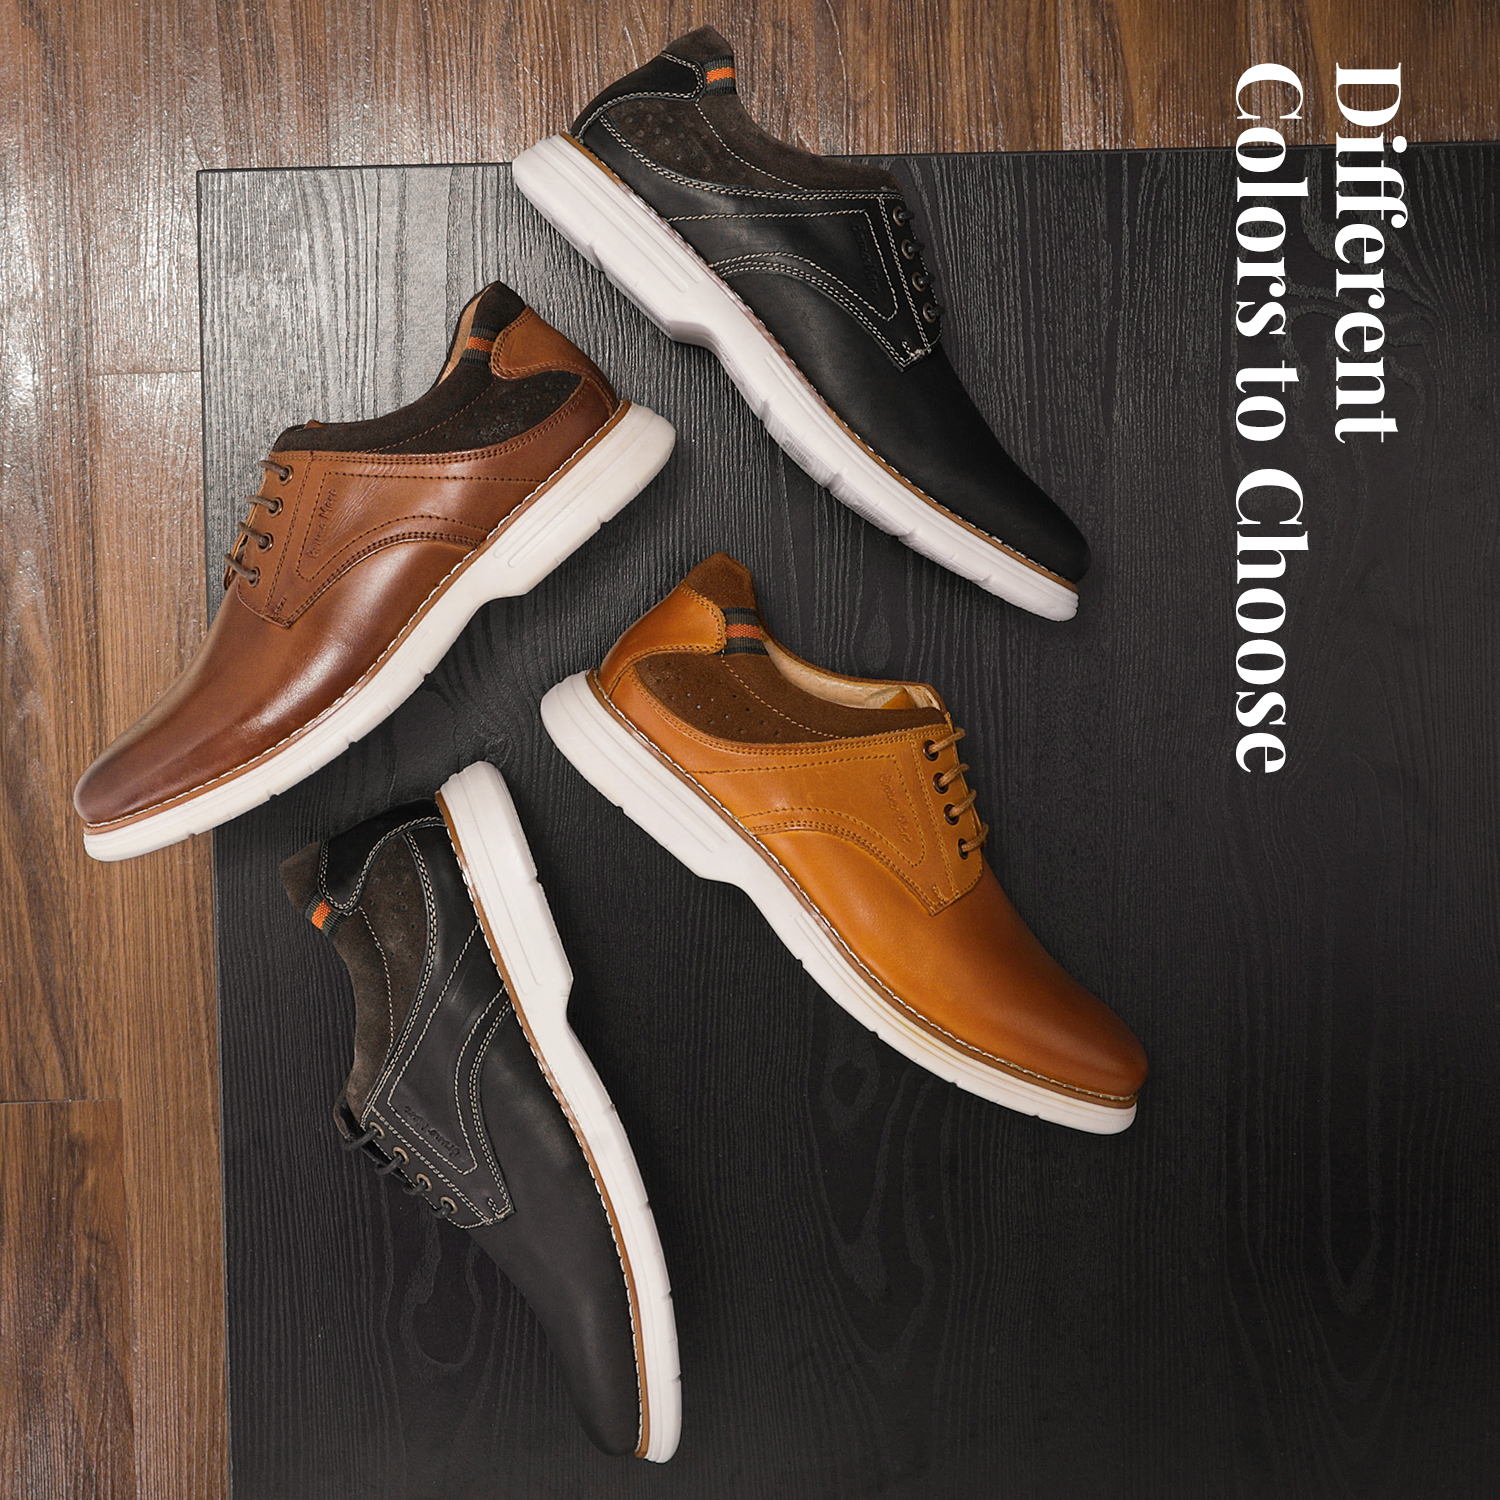 Mens-Fashion-Genuine-Leather-Business-Dress-Sneakers-Casual-Lace-up-Oxford-Shoe thumbnail 32